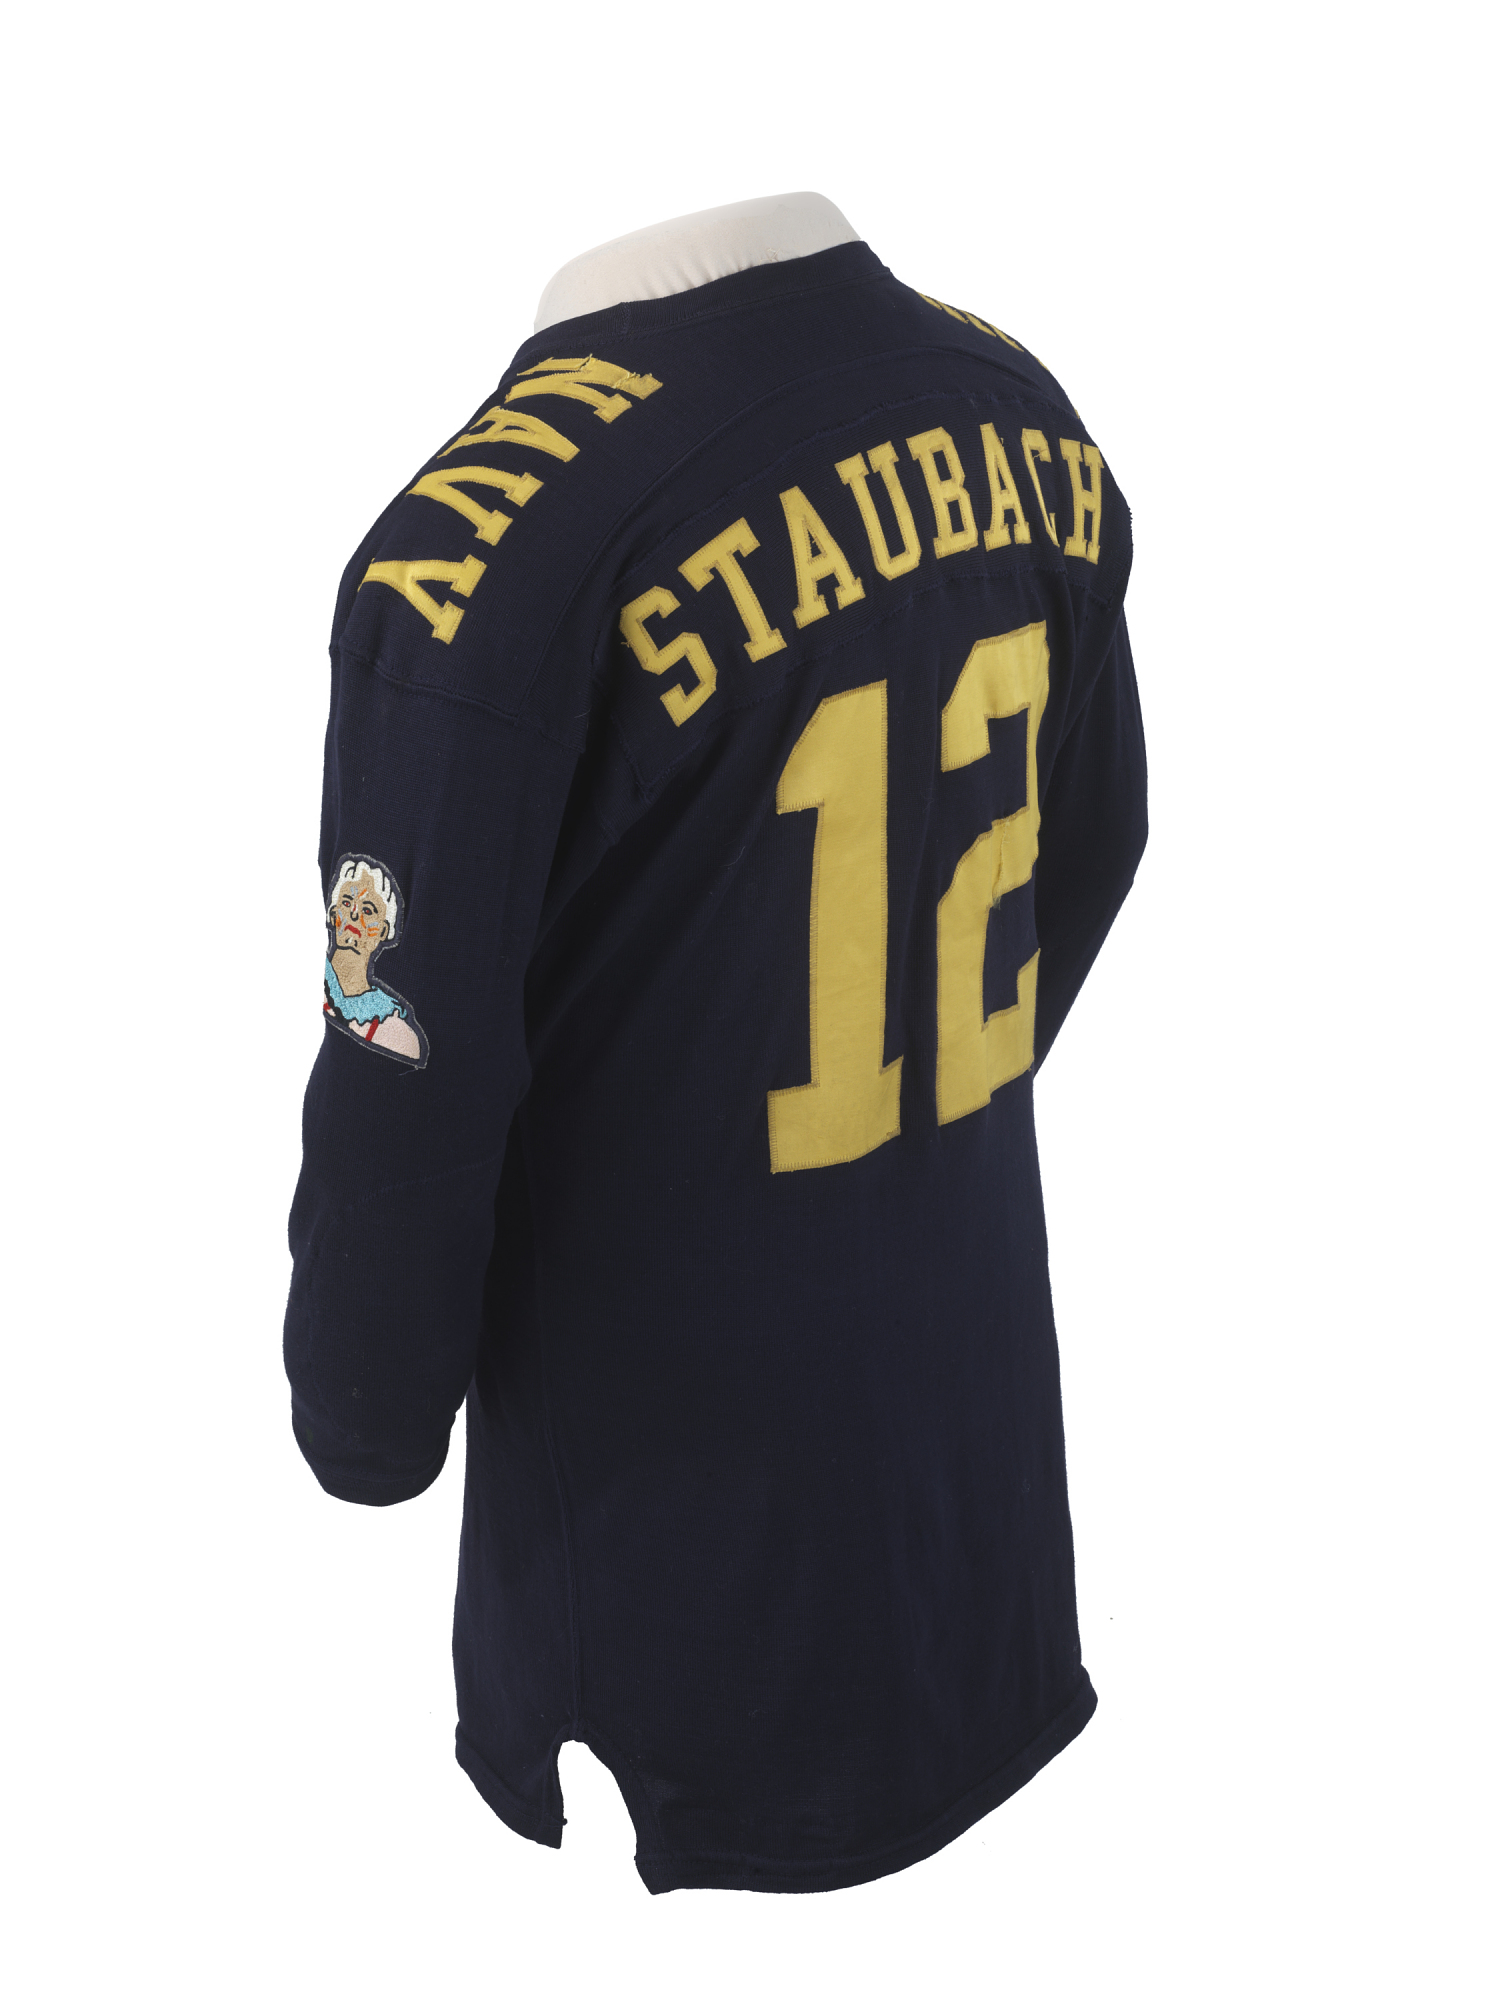 huge selection of dddf6 8dca8 United States Naval Academy Roger Staubach Jersey | National ...